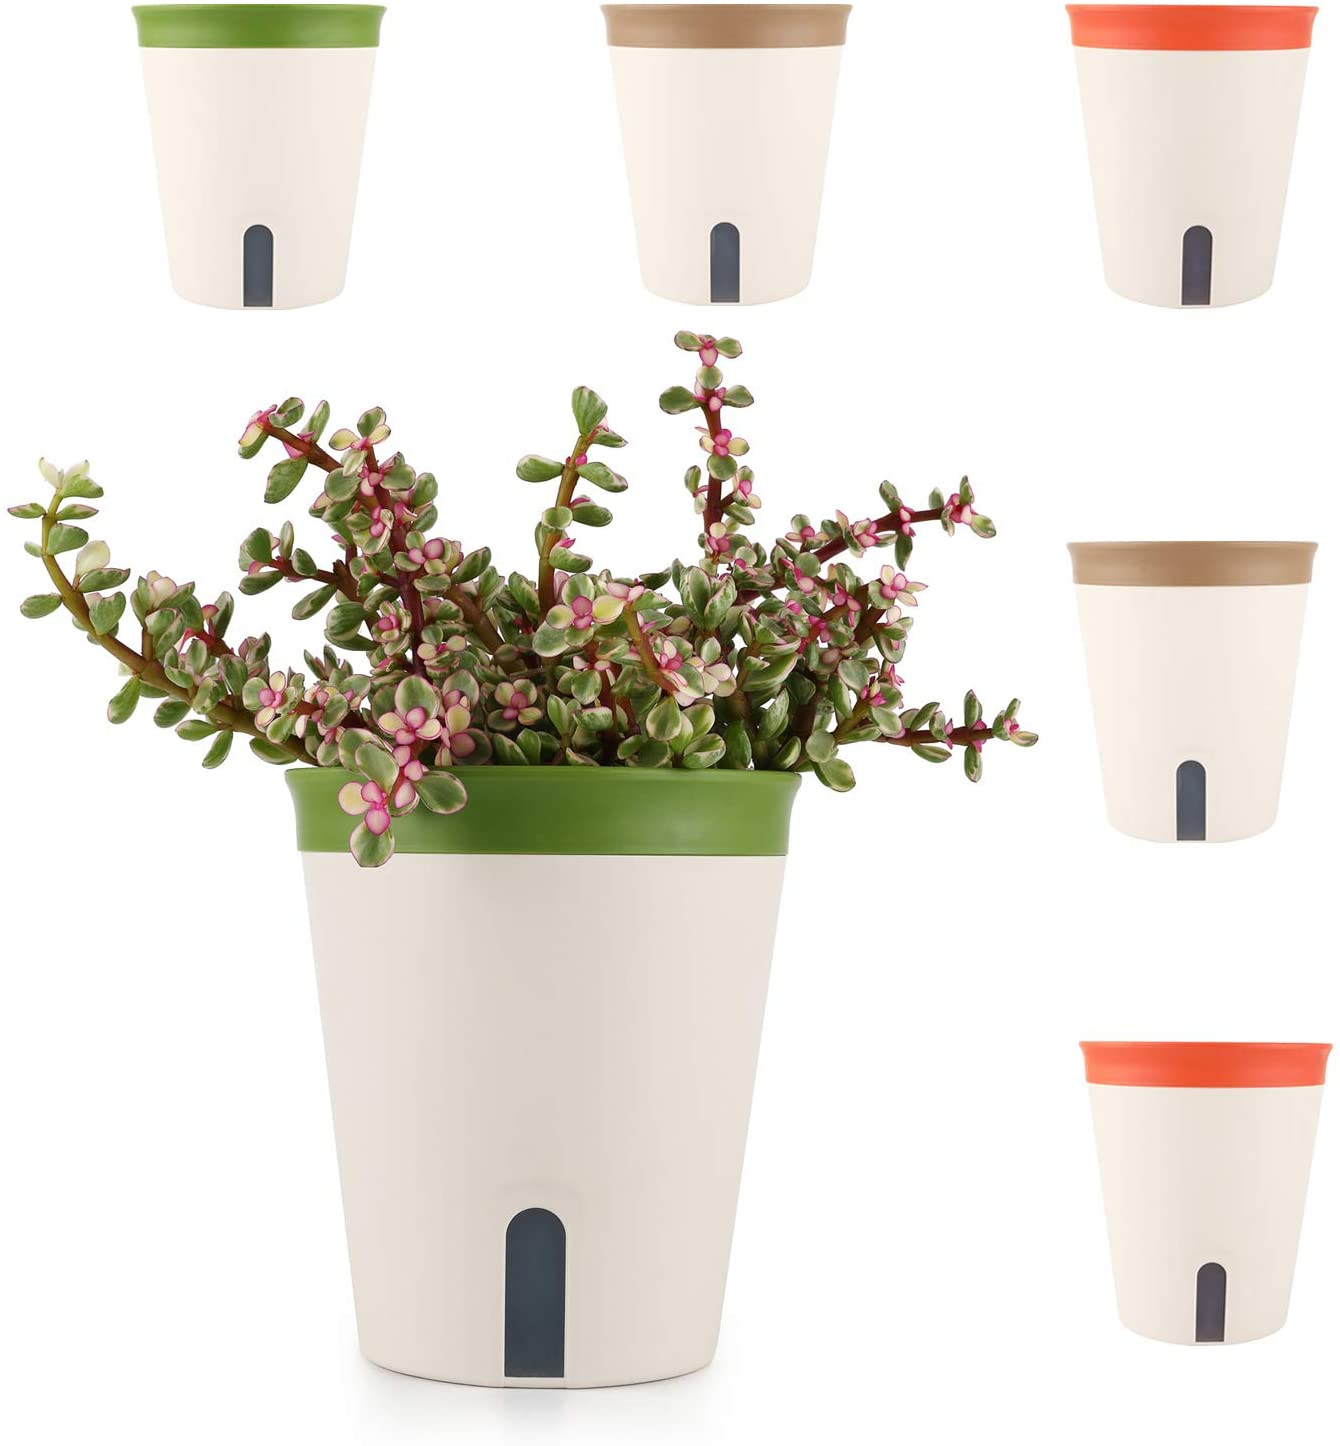 T4U Self Watering Planter Pot Round 5 Inch Multi Color Set of 6, Plastic Plant Pot with Visual Water Level Window Indoor Decorative Garden Flower Bonsai Pot for Aloe, Herb and Succulent Plants